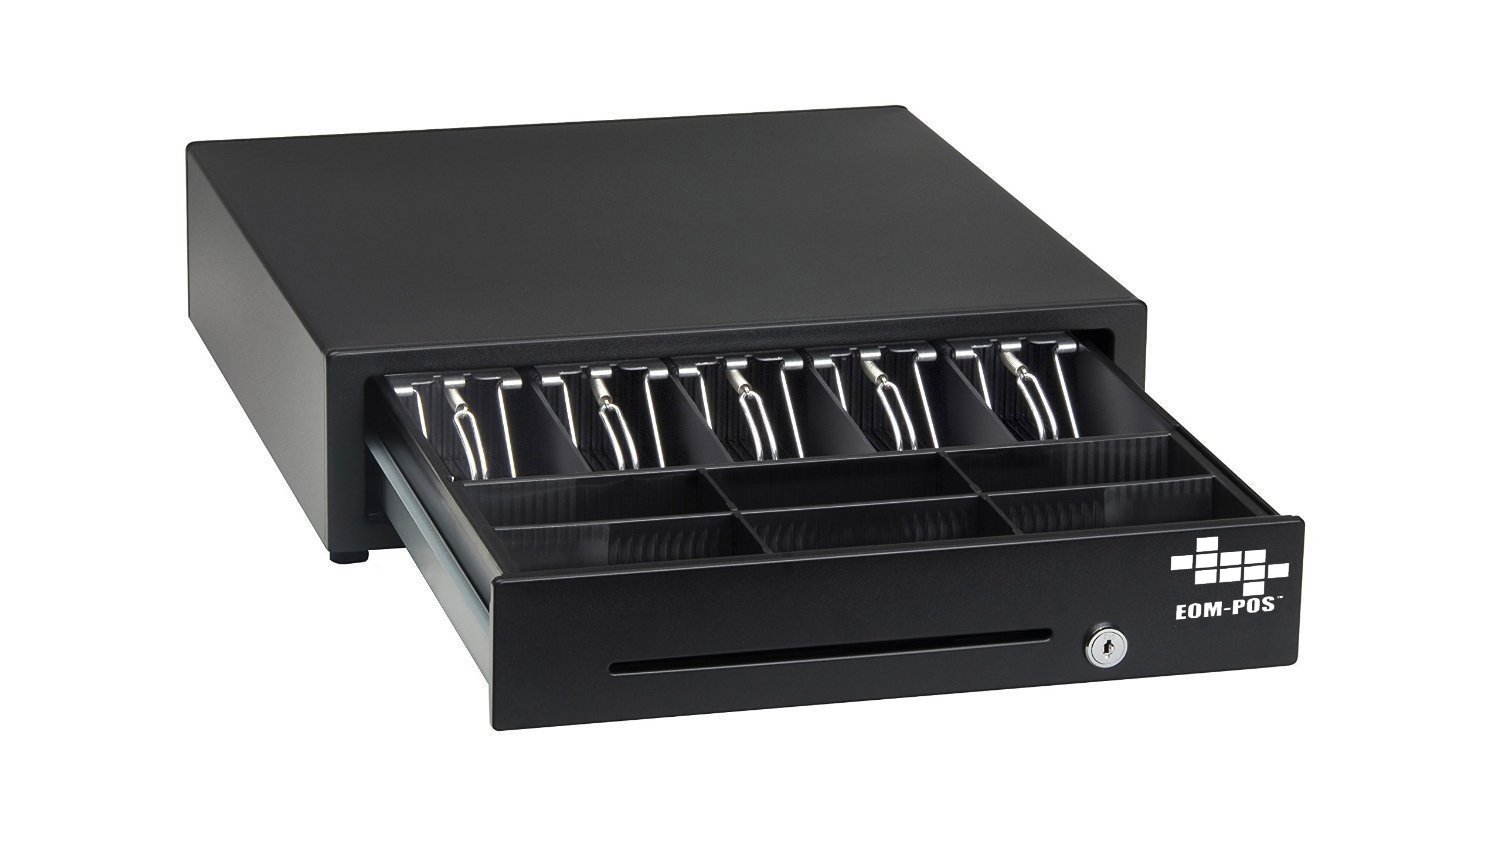 EOM-POS Heavy Duty Cash Register Money Drawer. Compatible with Square Stand [Receipt Printer Required]. Includes built in cable to connect to receipt printer.